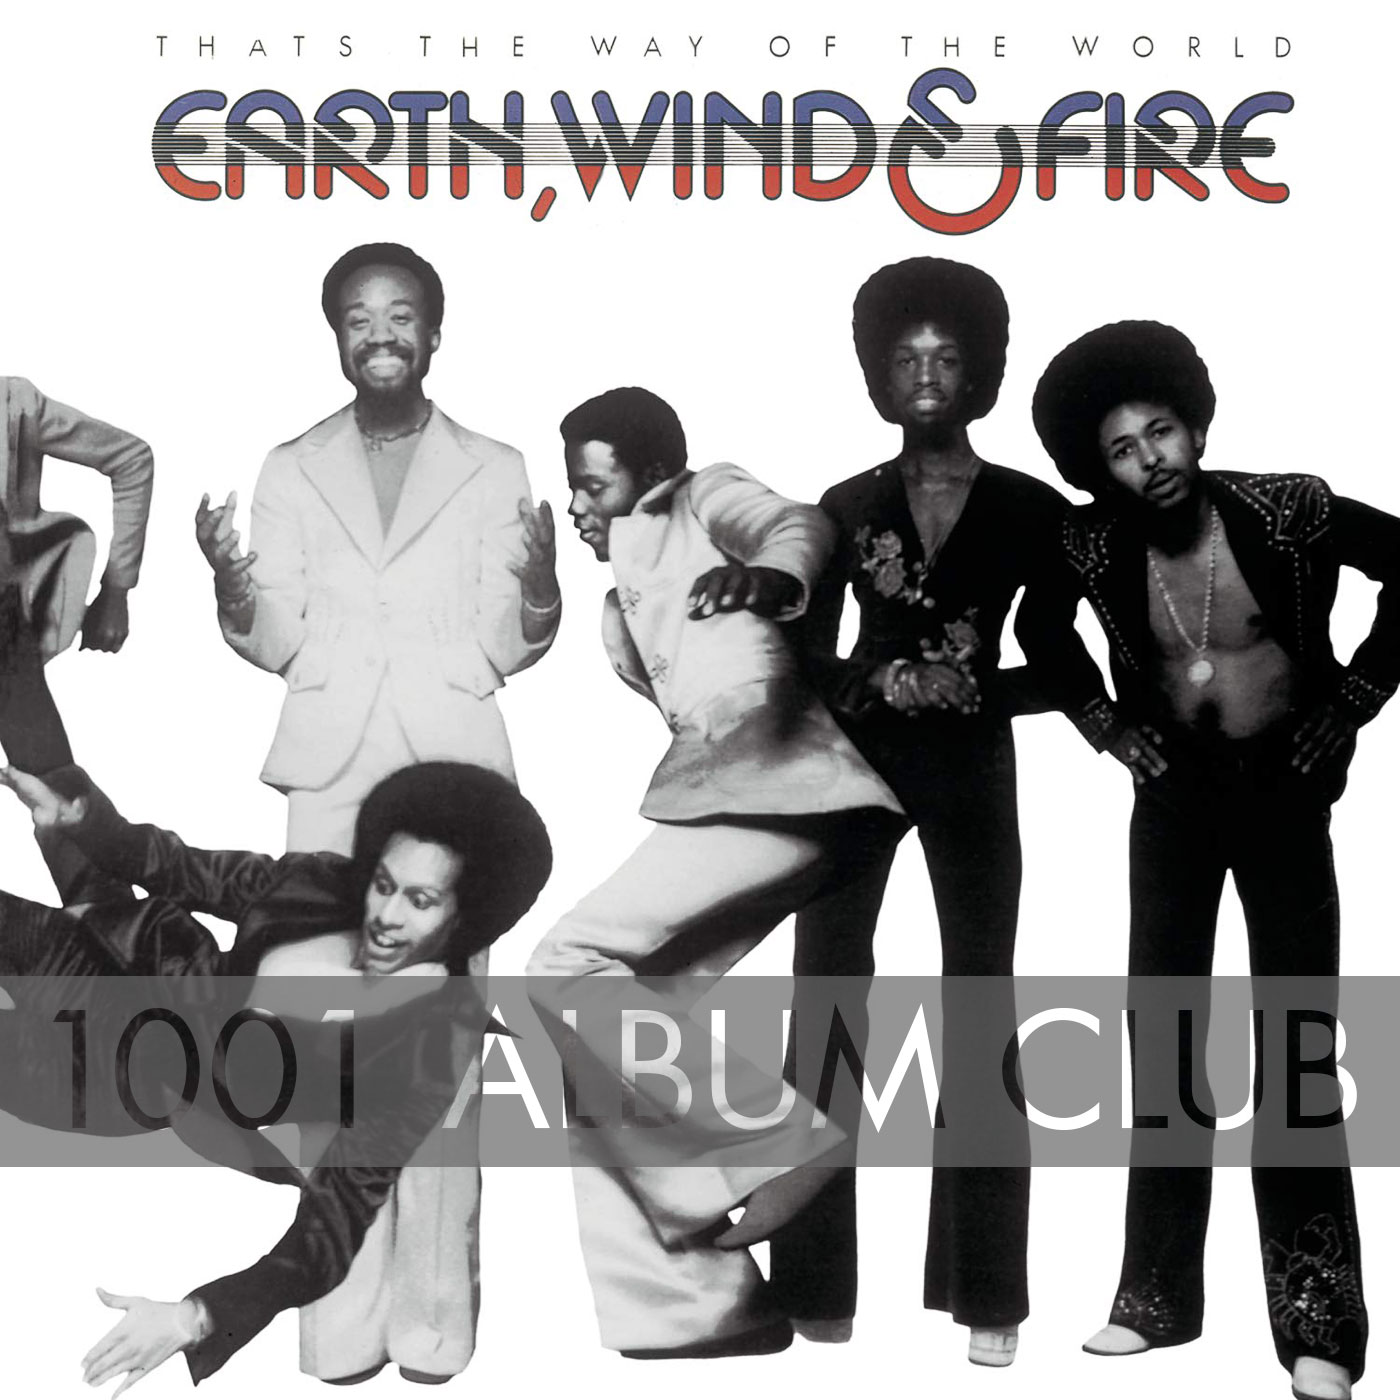 347 Earth Wind and Fire - That's the Way of the World